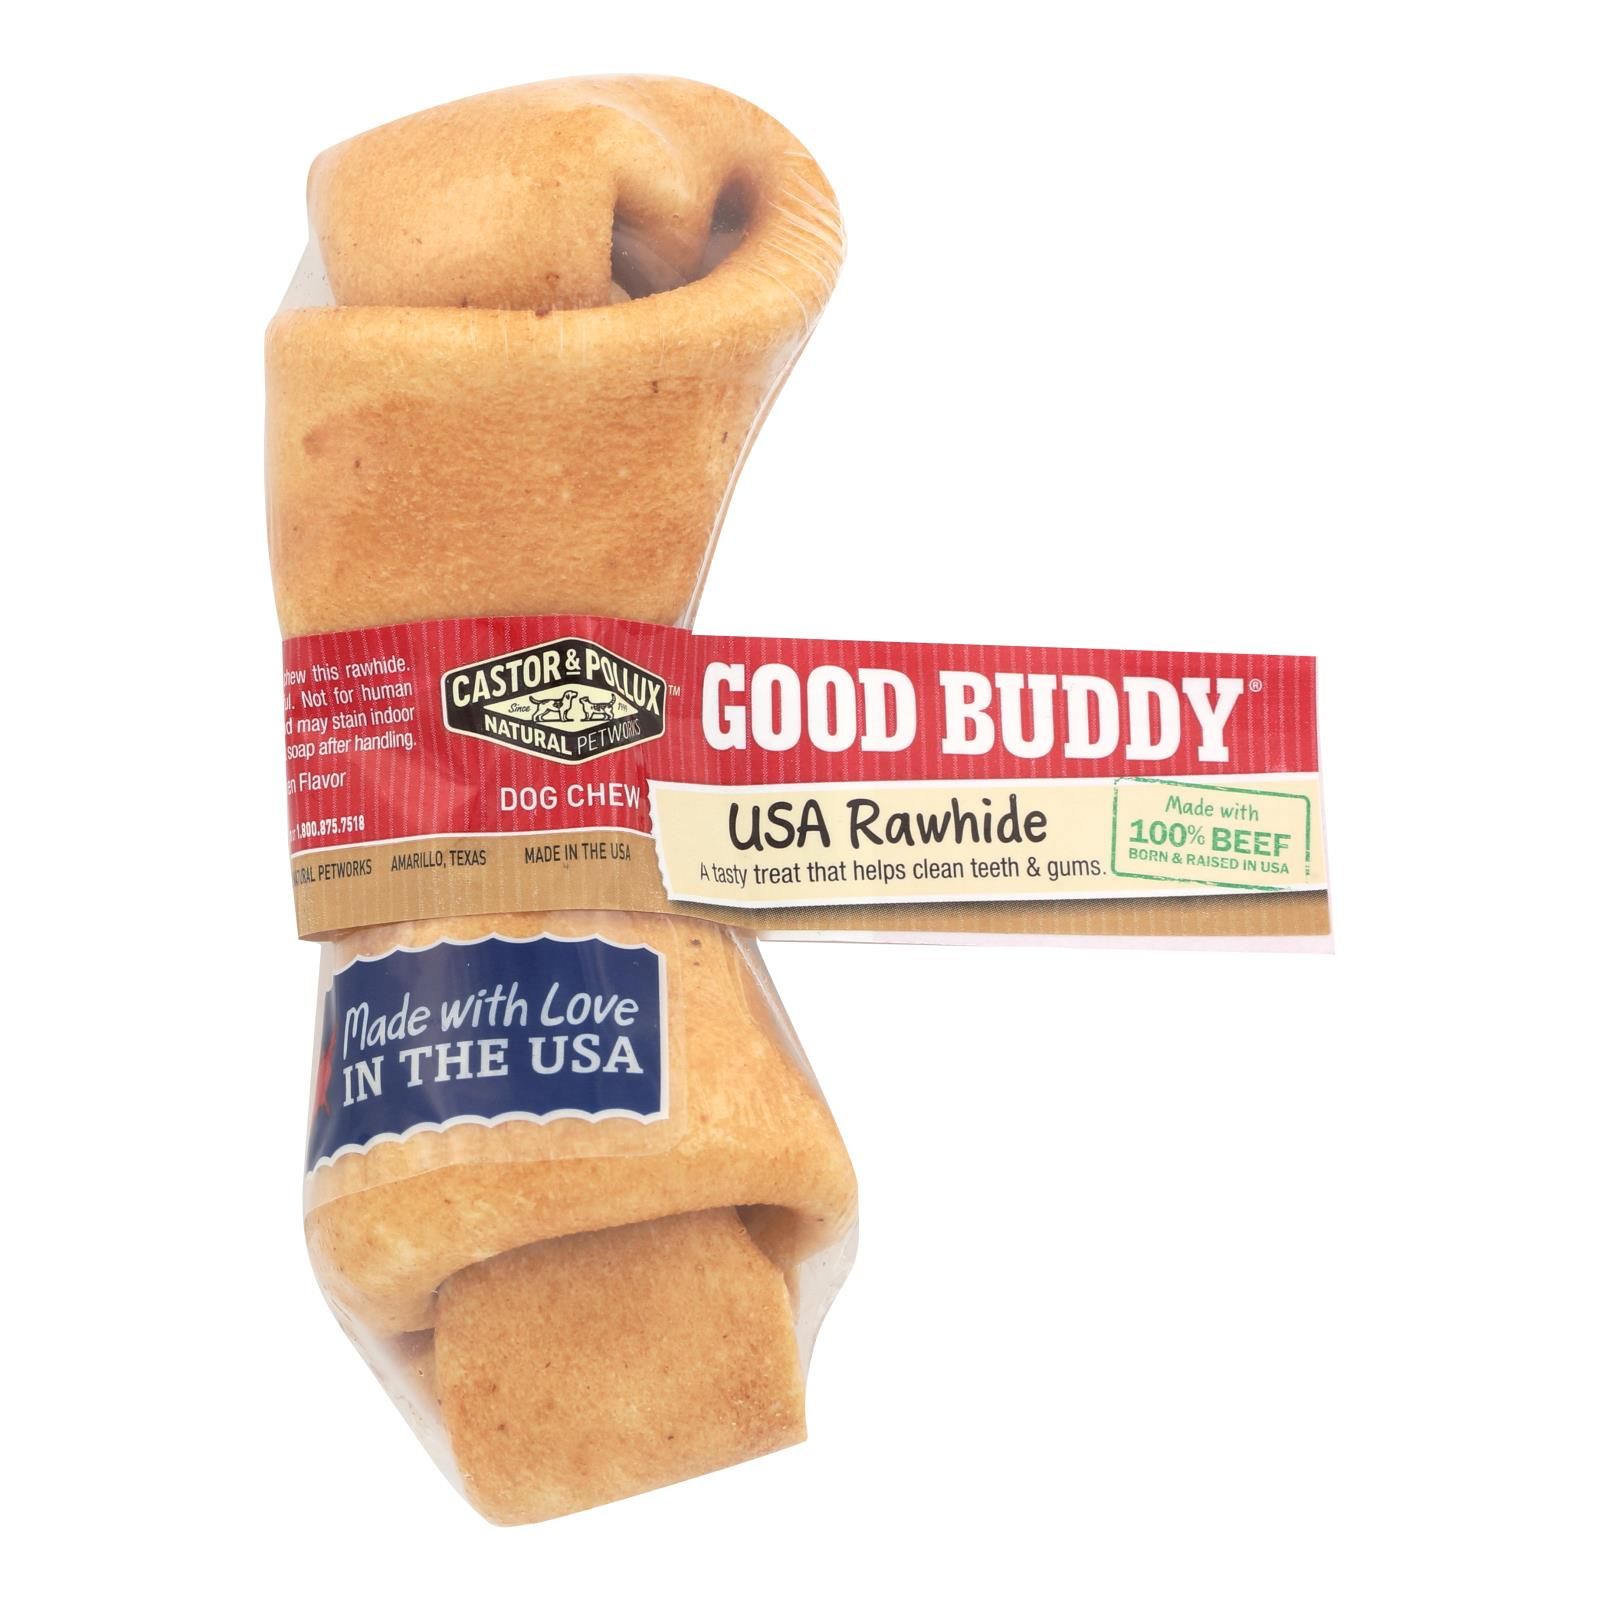 Castor and Pollux Good Buddy Rawhide Bone Dog Treat - Case of 24